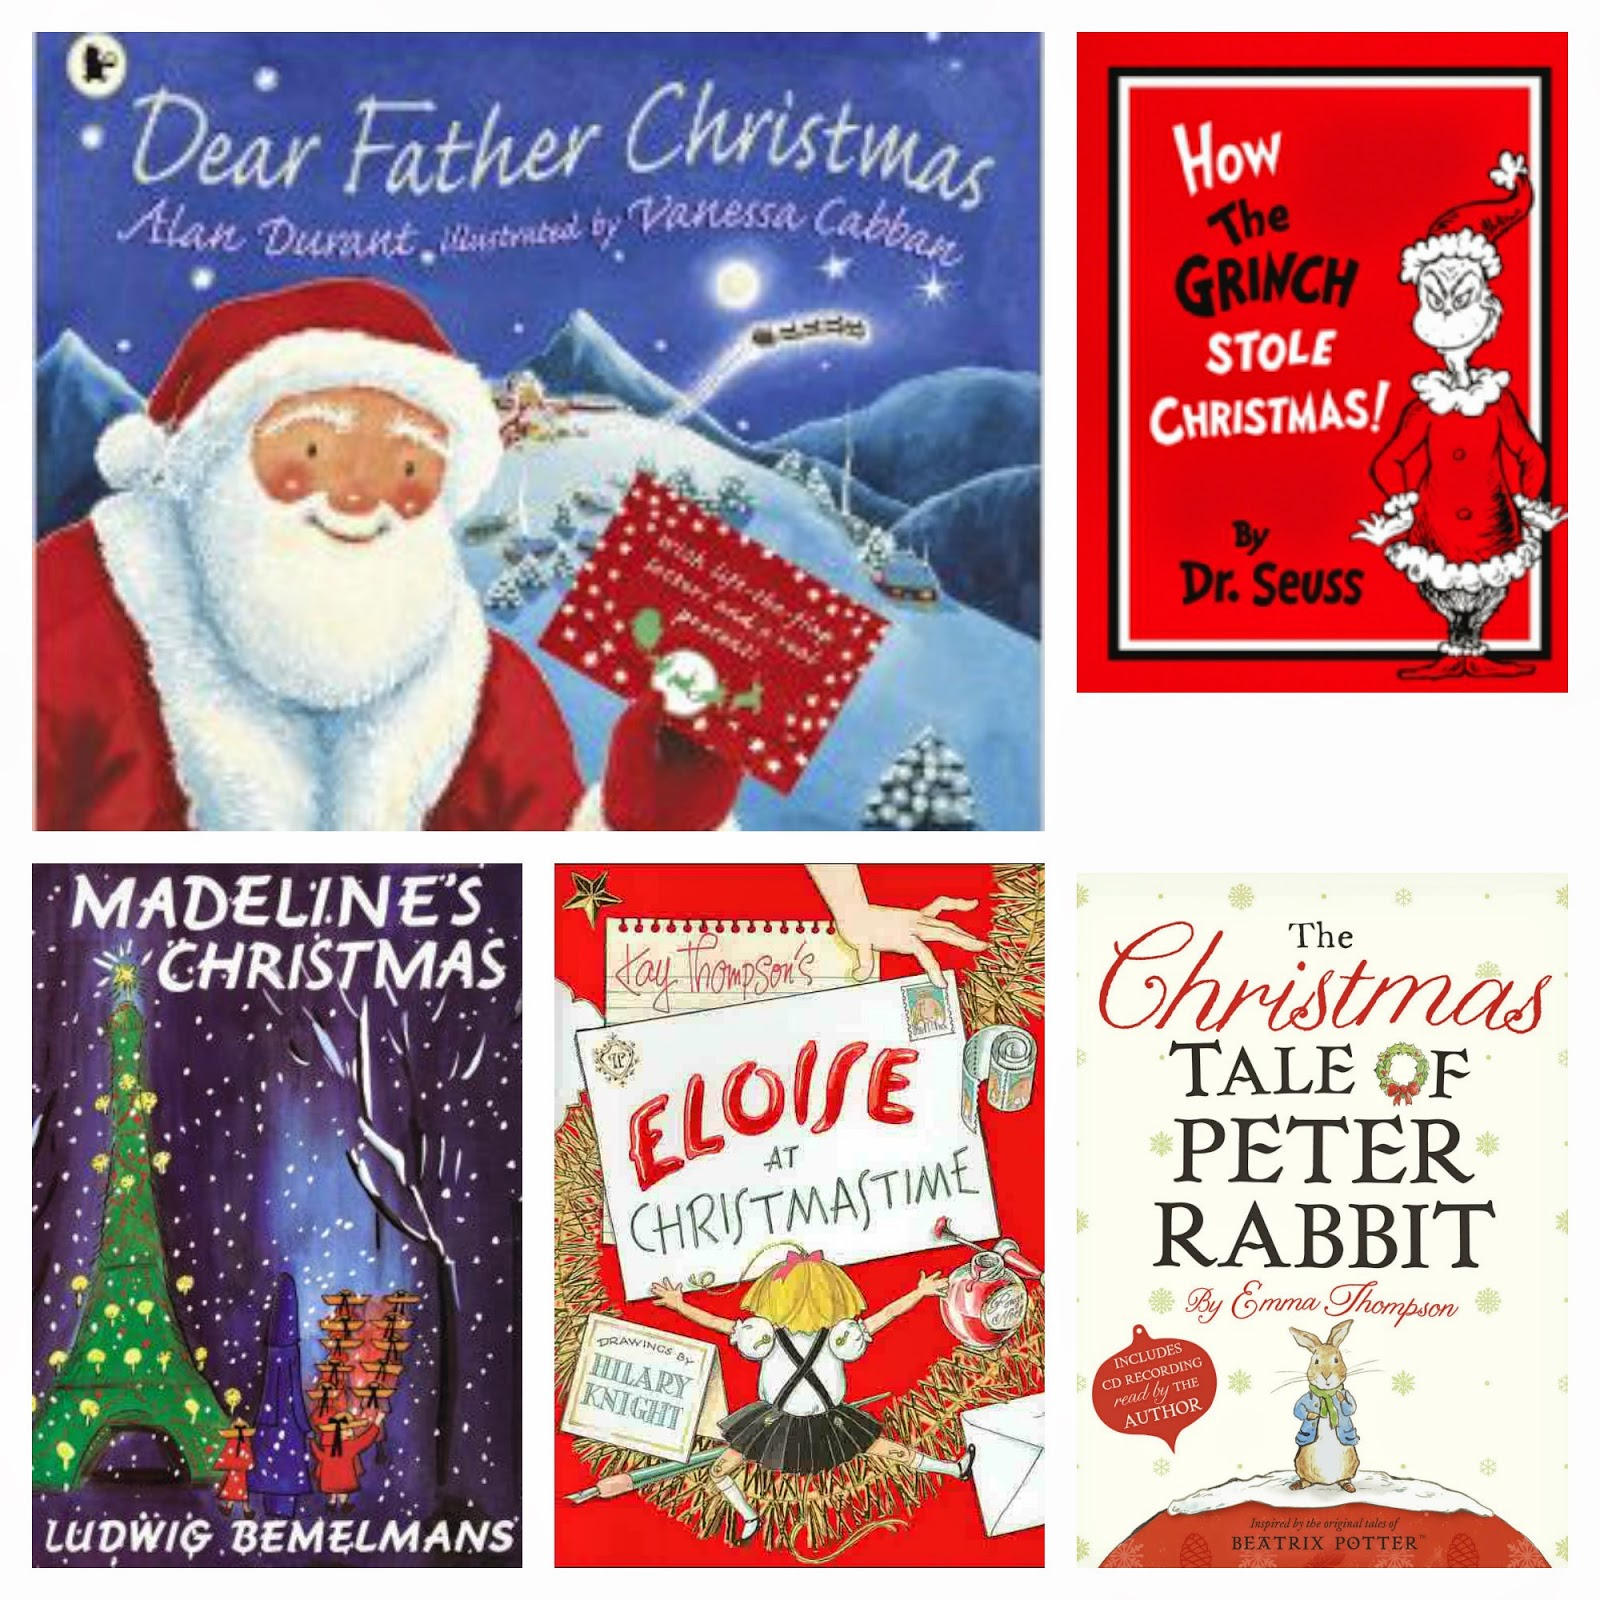 25 days of christmas books bookclub special book club special sunday night - Best Christmas Books For Kids